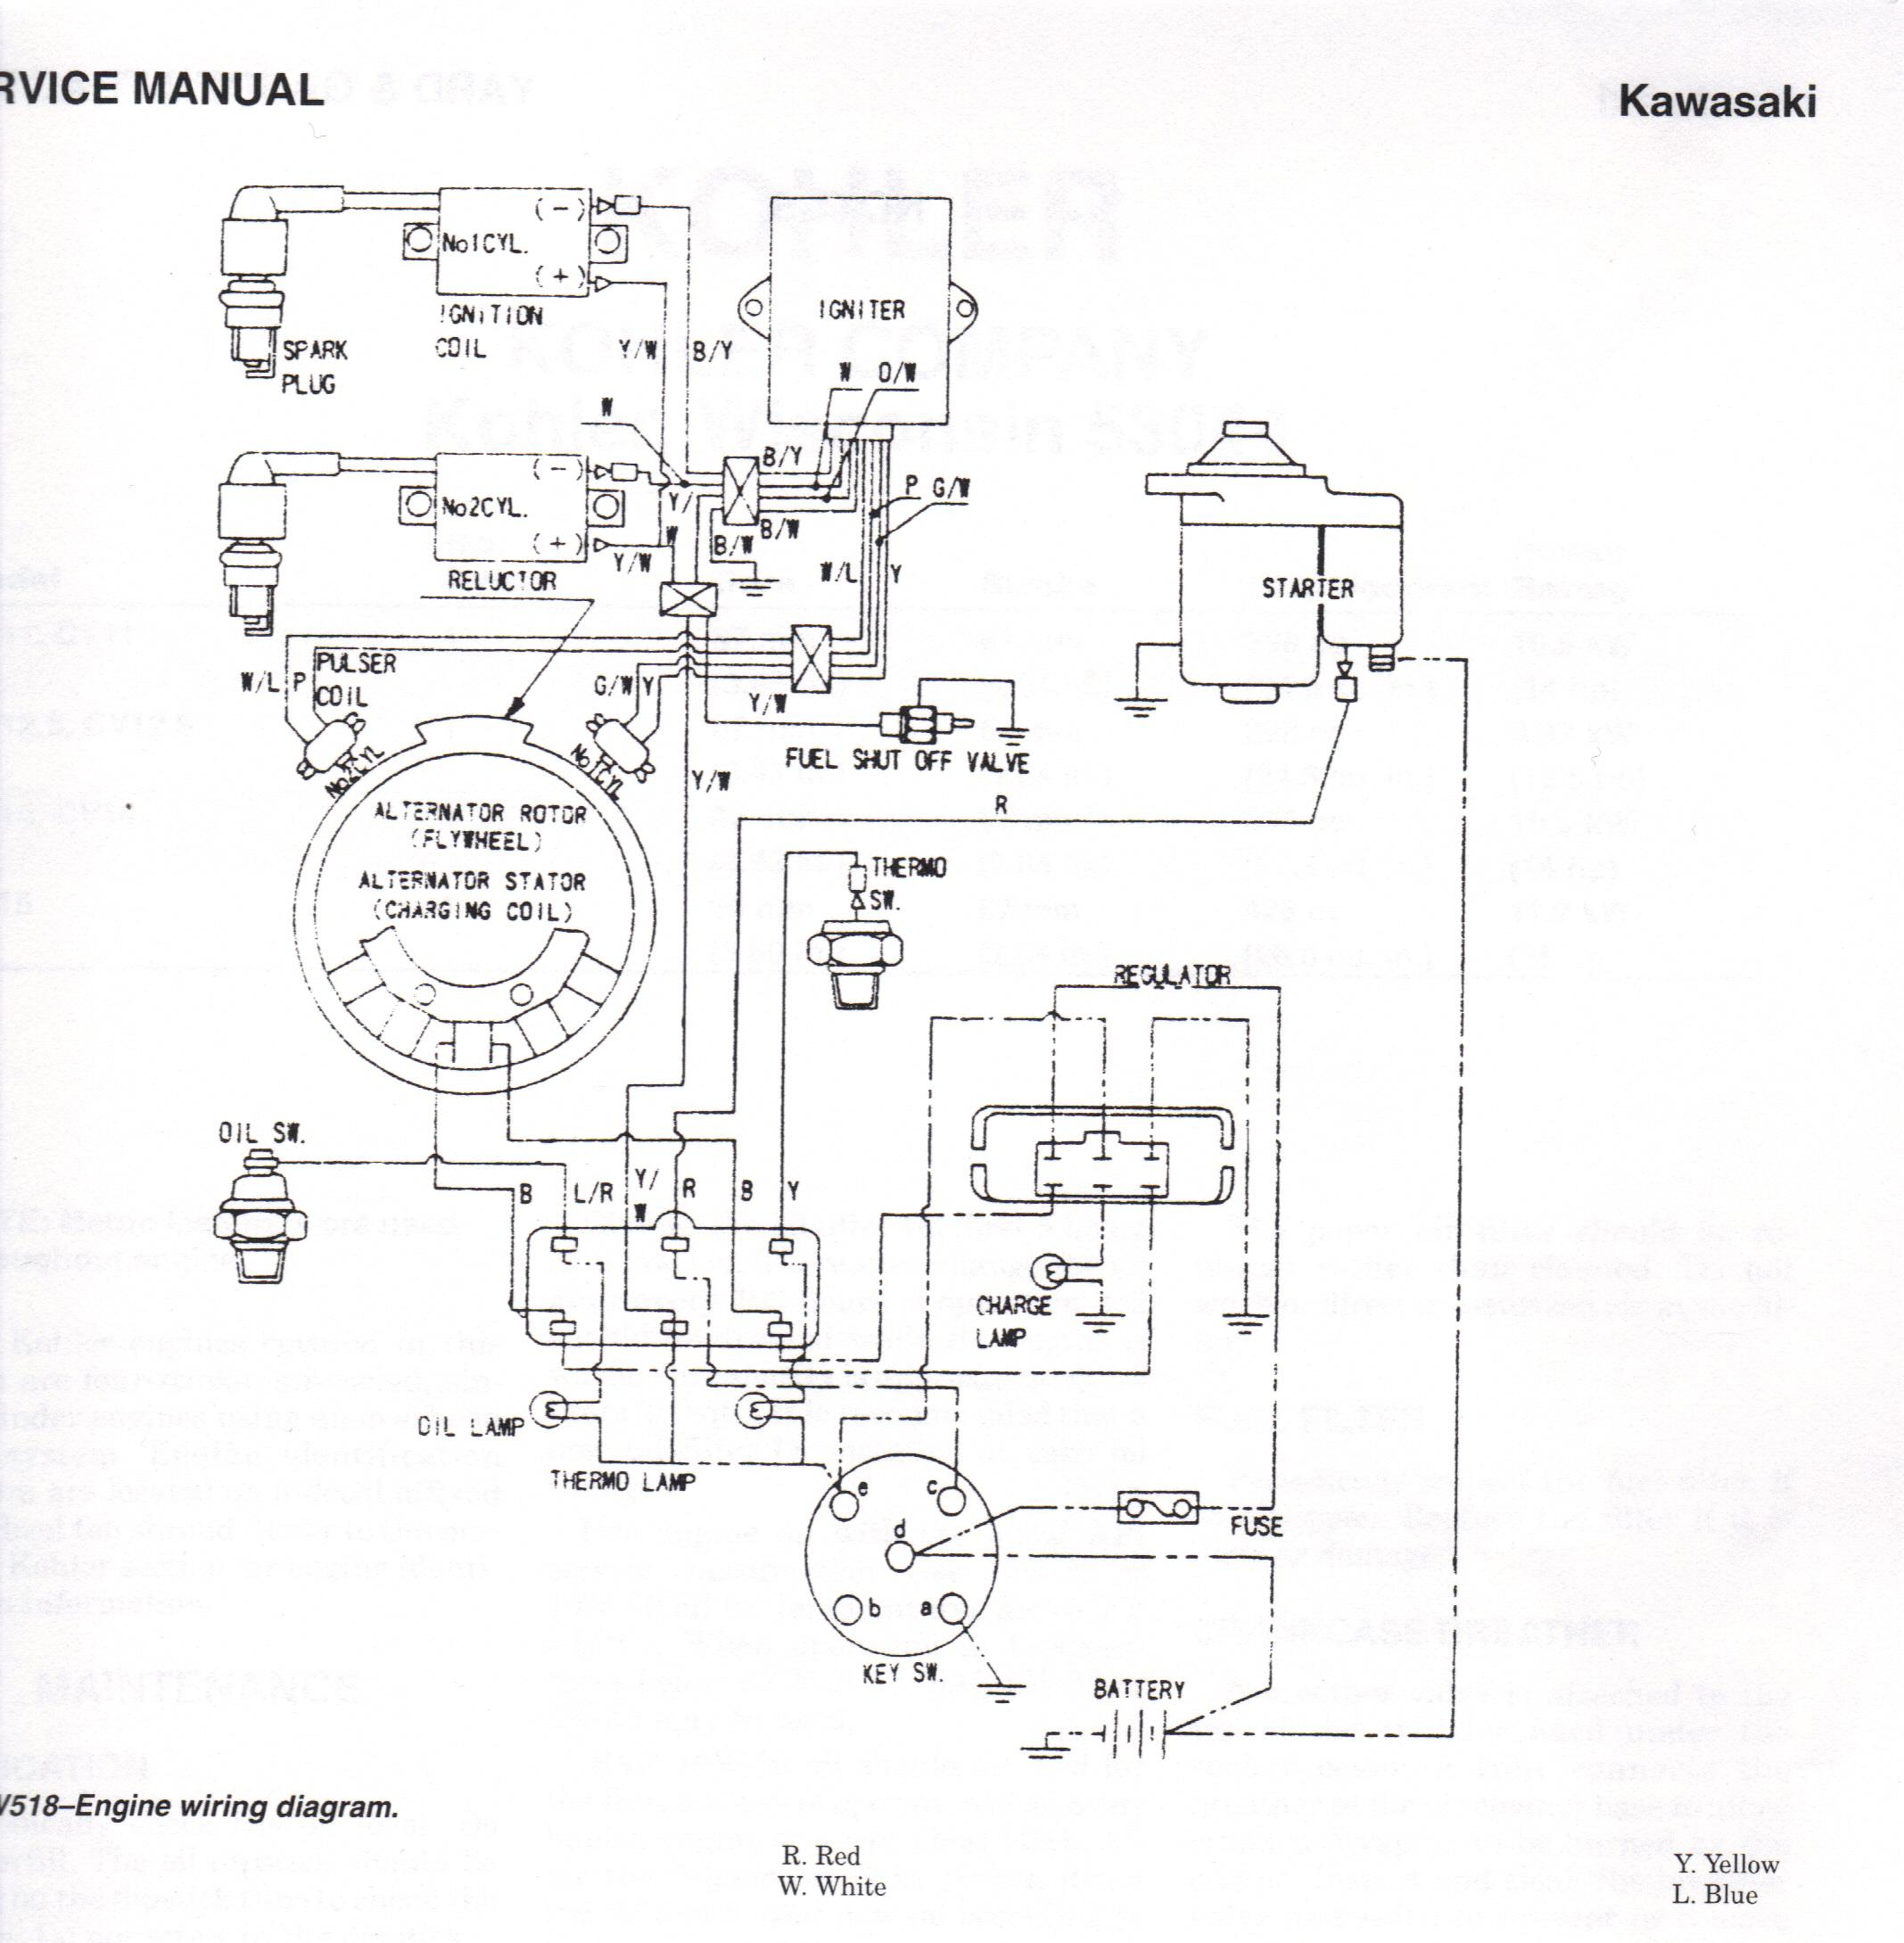 have jd 345 with kawasaki fd590v engine back fired when last rh justanswer com Kawasaki Electrical Diagrams Kawasaki Electrical Diagrams